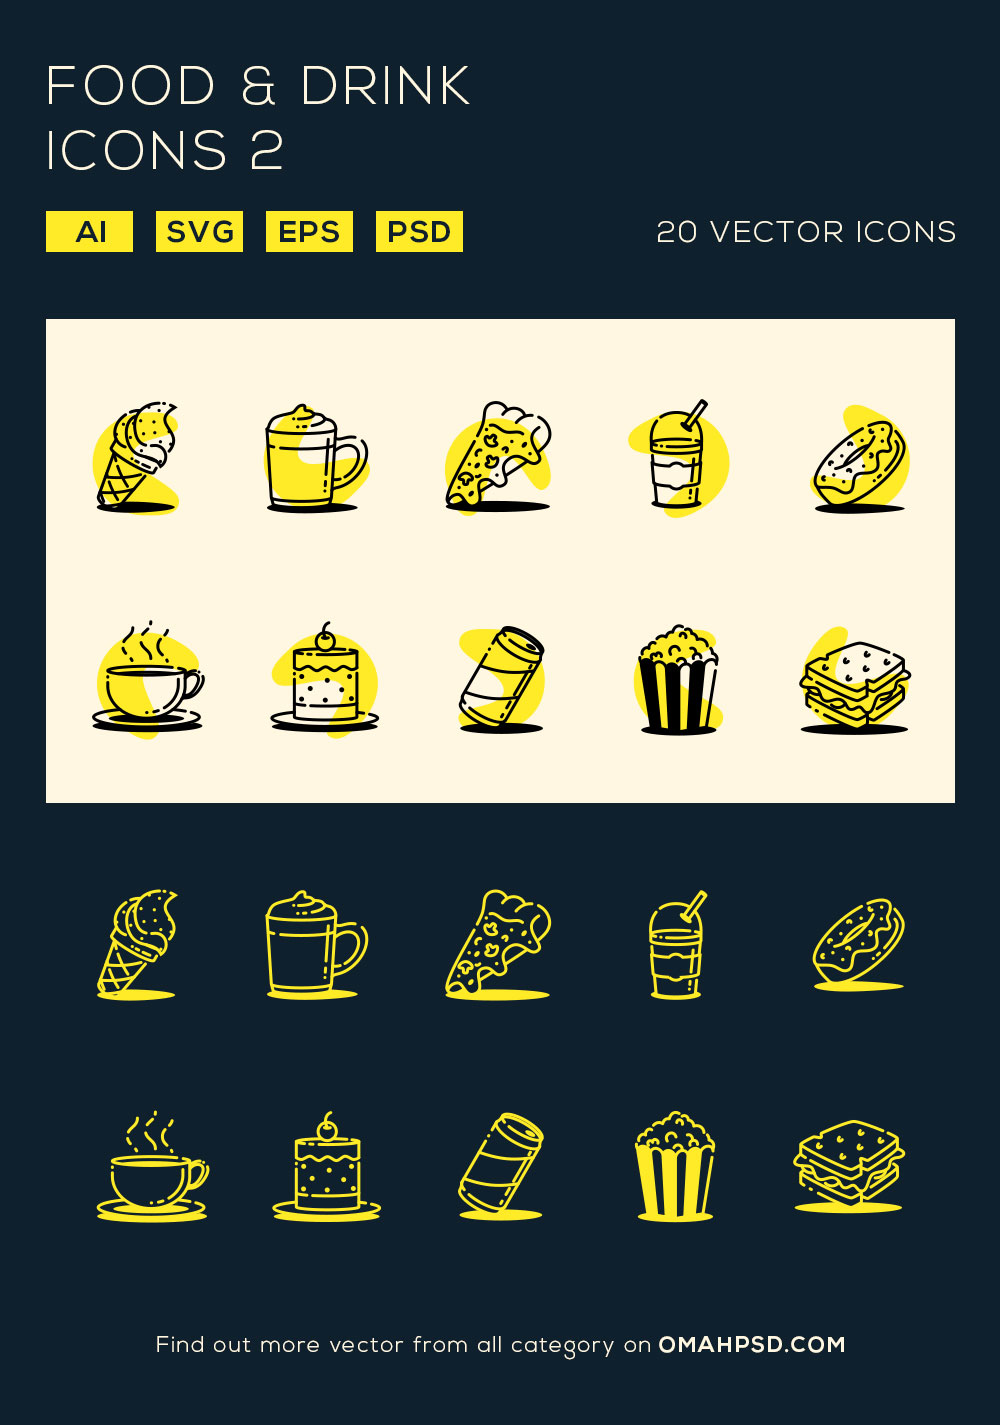 Free Food and Drink Icons Vol. 2 Preview